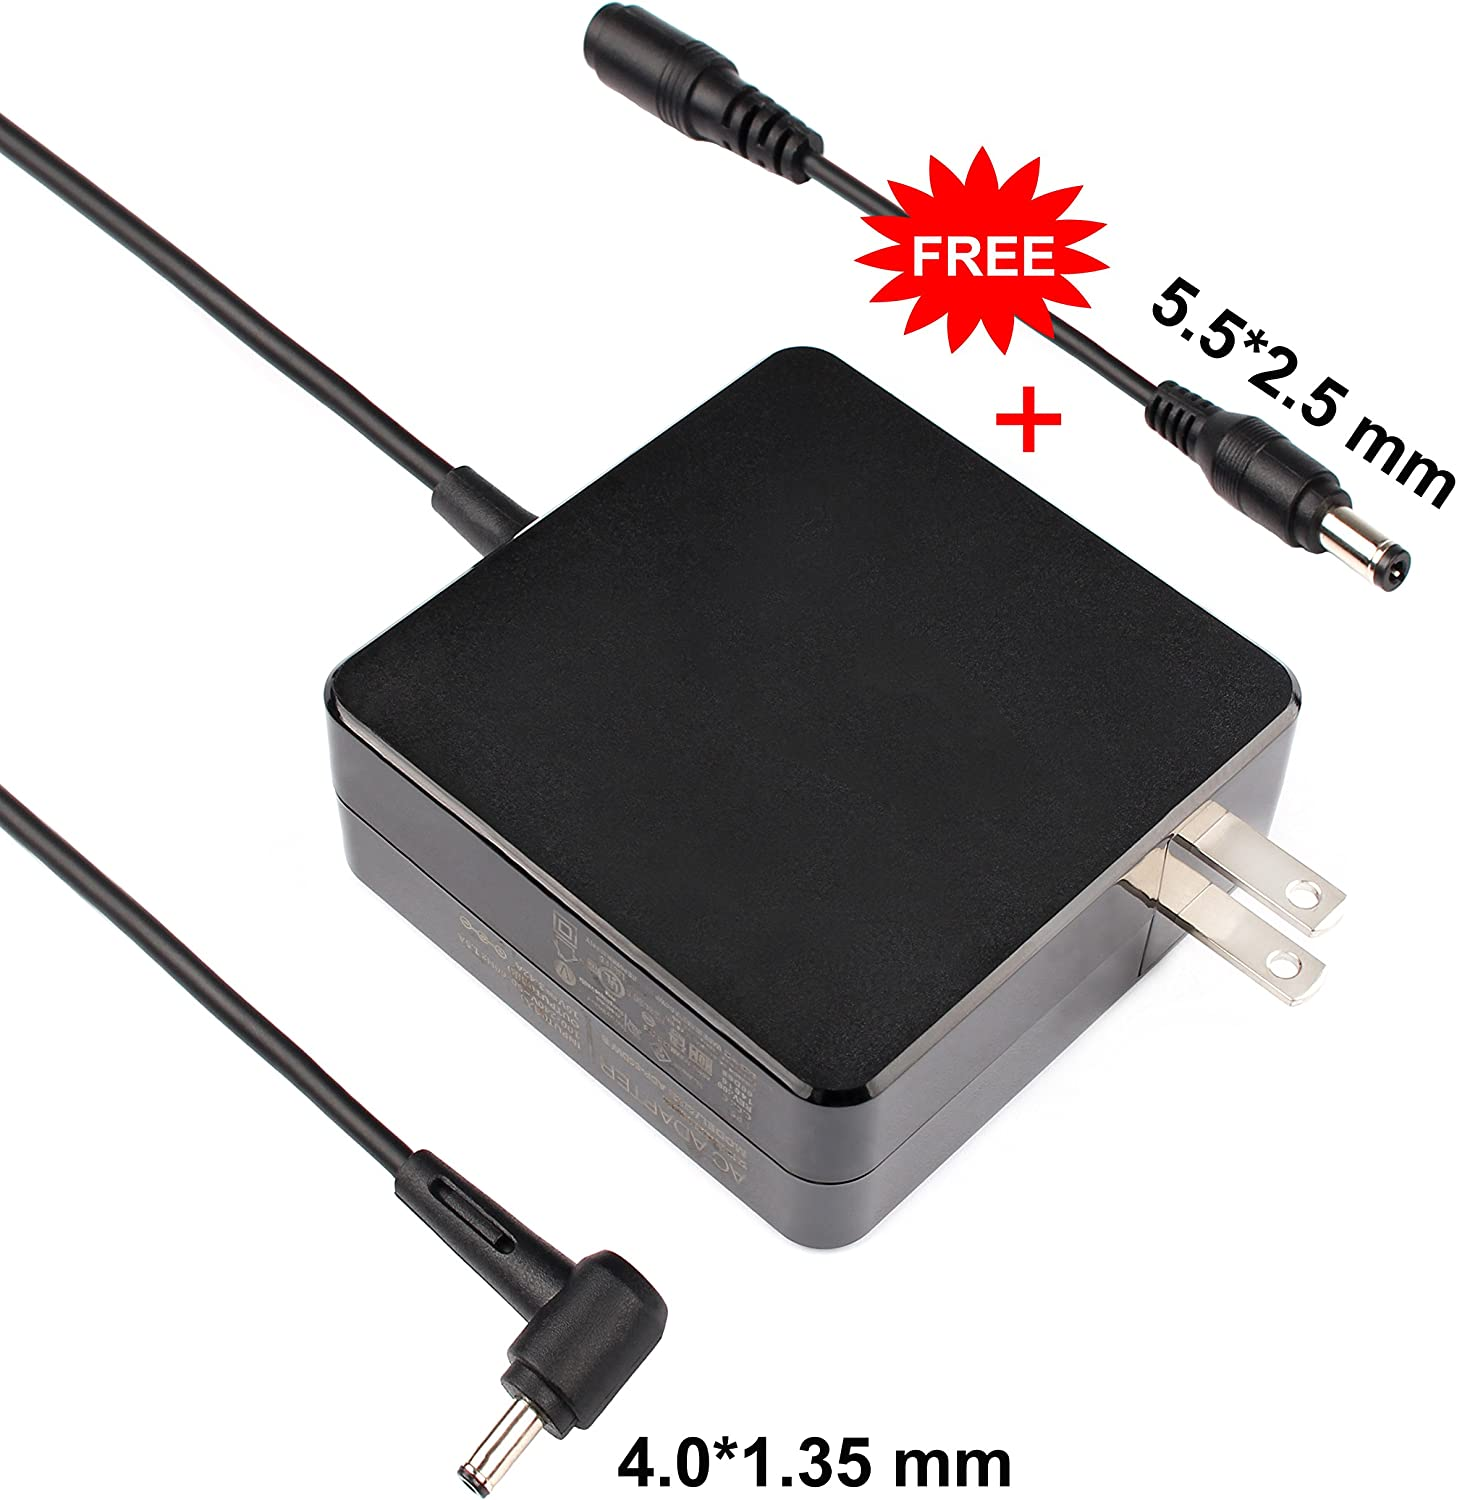 Charger Power Ac Adapter 65w for ASUS X556UQ F510UA F556UA TP510UQ TP410UA TP410UR UX360CA UX360C UX330UA UX330U UX310UQ UX410UQ UX430U UX430UQ UX303LA UX303LB UX303LN UX303UA S510UA S510UN X510U X541